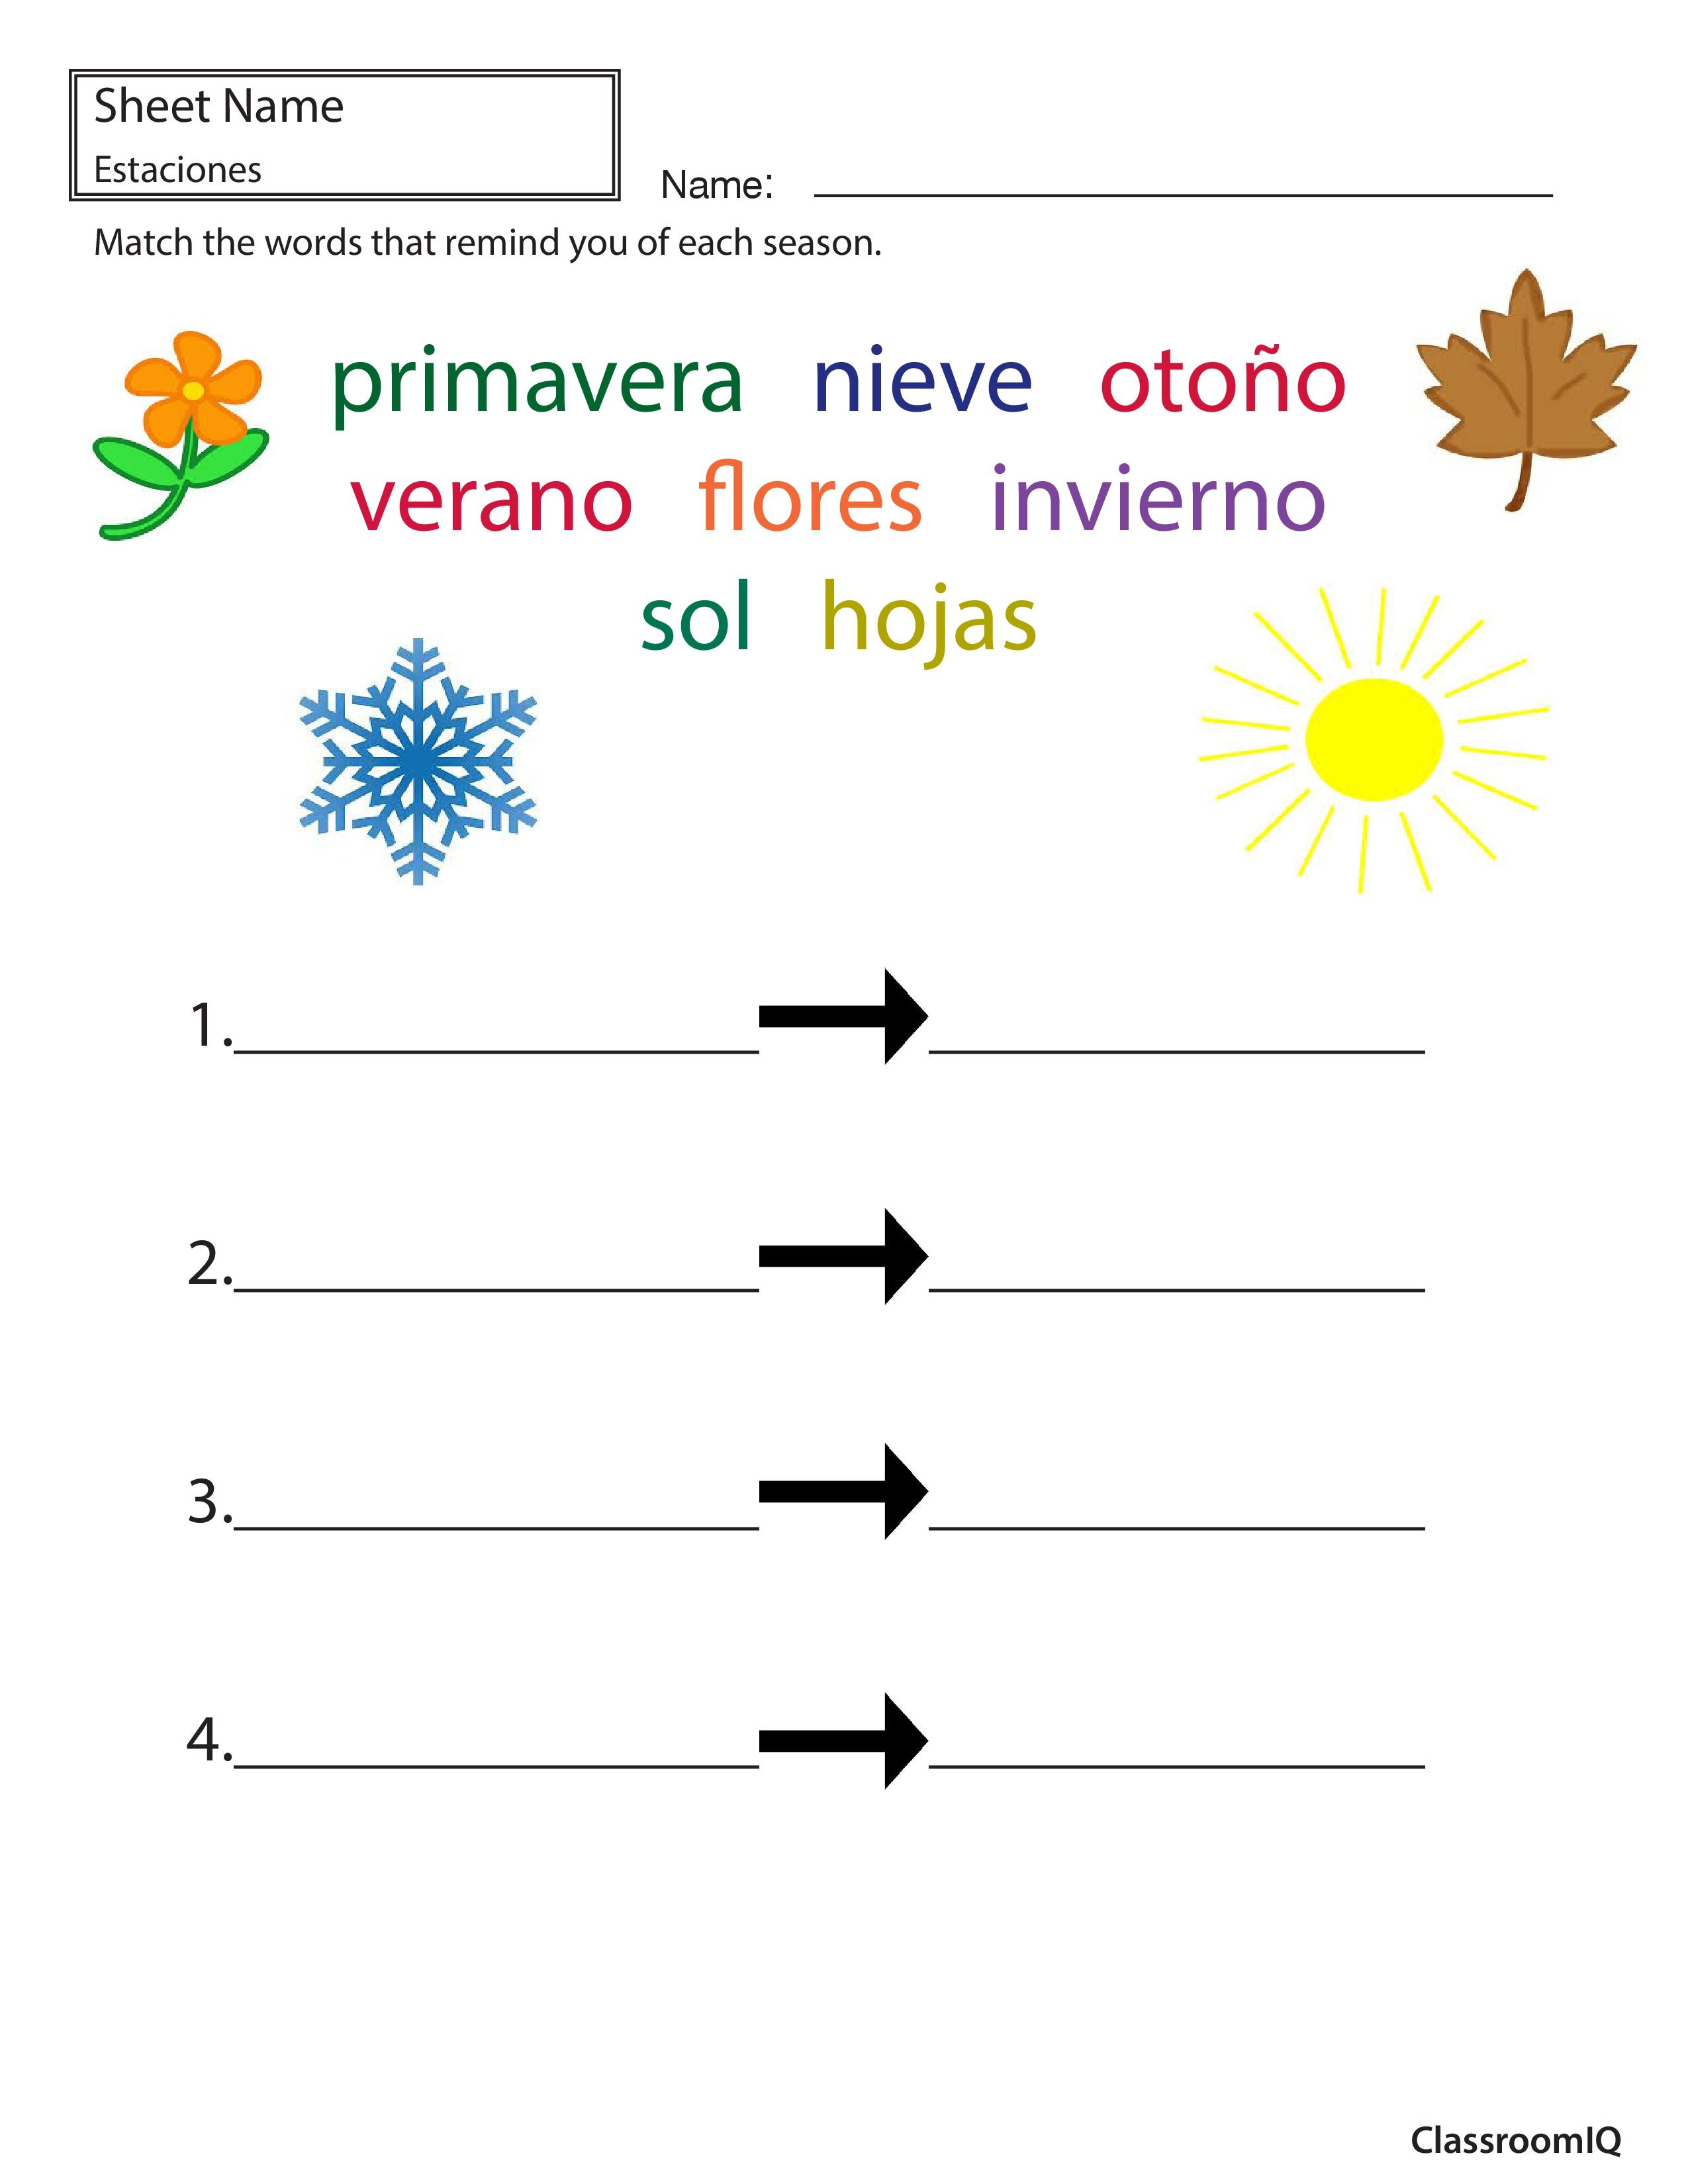 seasonal words in spanish spanishworksheets classroomiq newteachers spanish worksheets. Black Bedroom Furniture Sets. Home Design Ideas